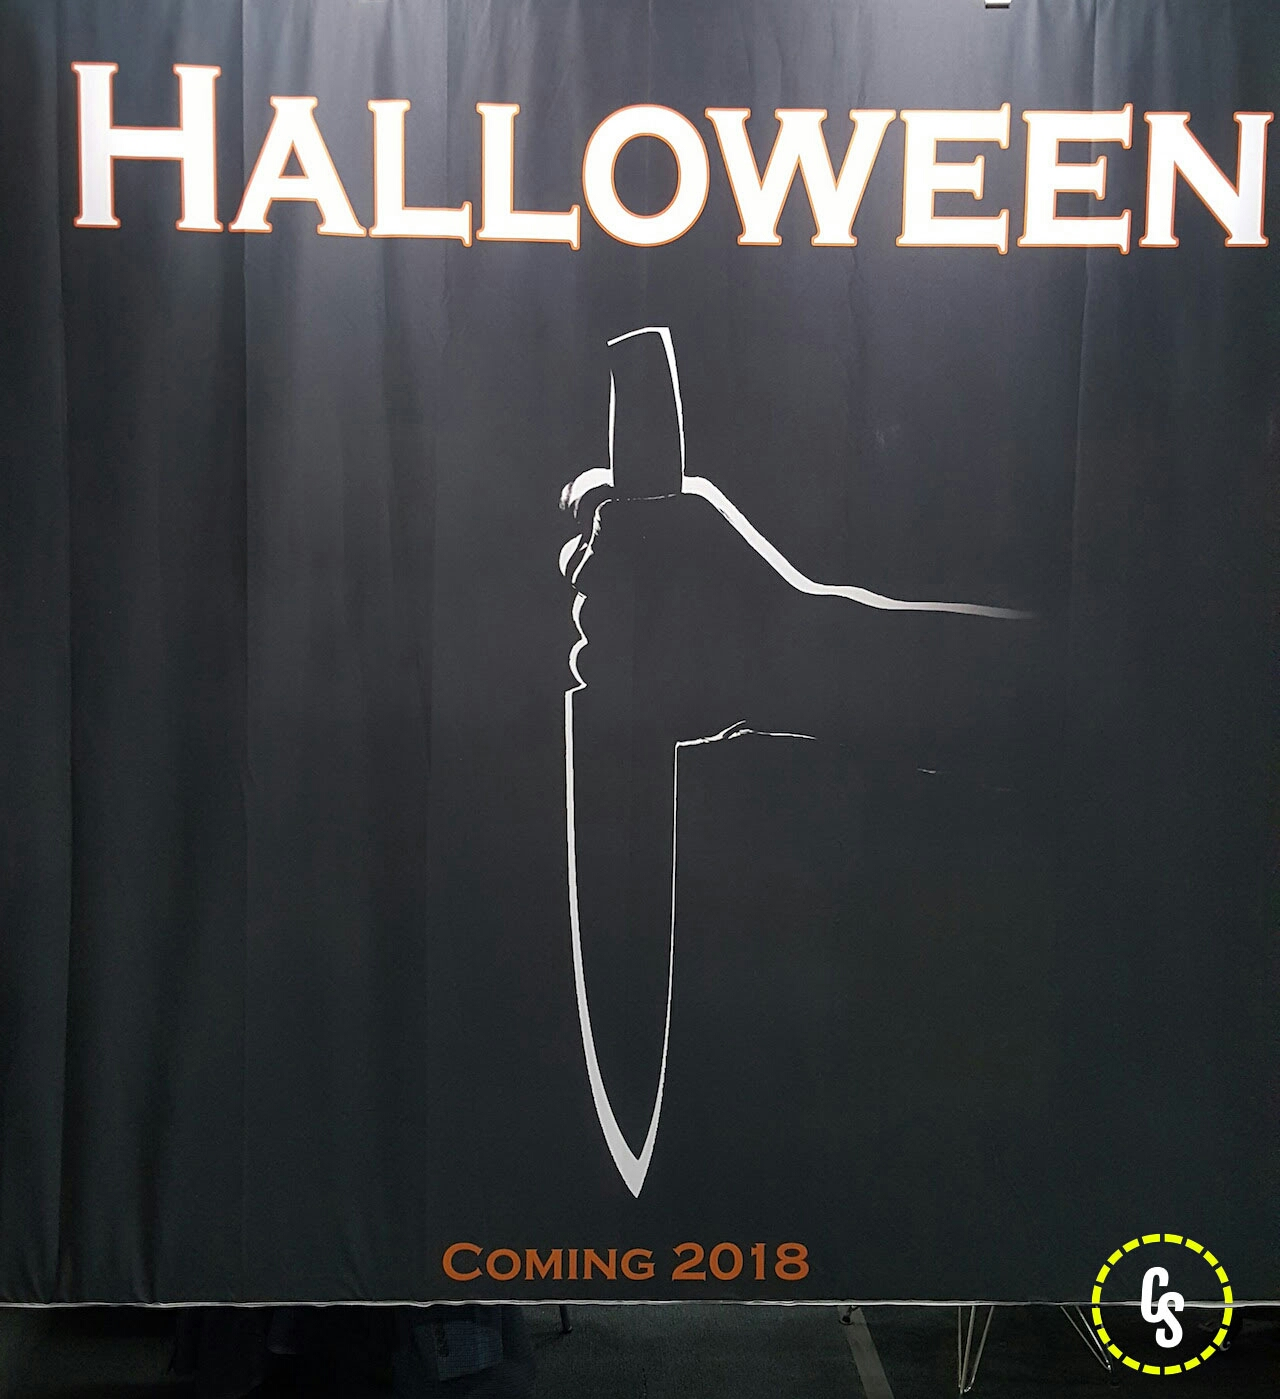 'Halloween' 2018 promo art. (photo courtesy of ComingSoon.net)